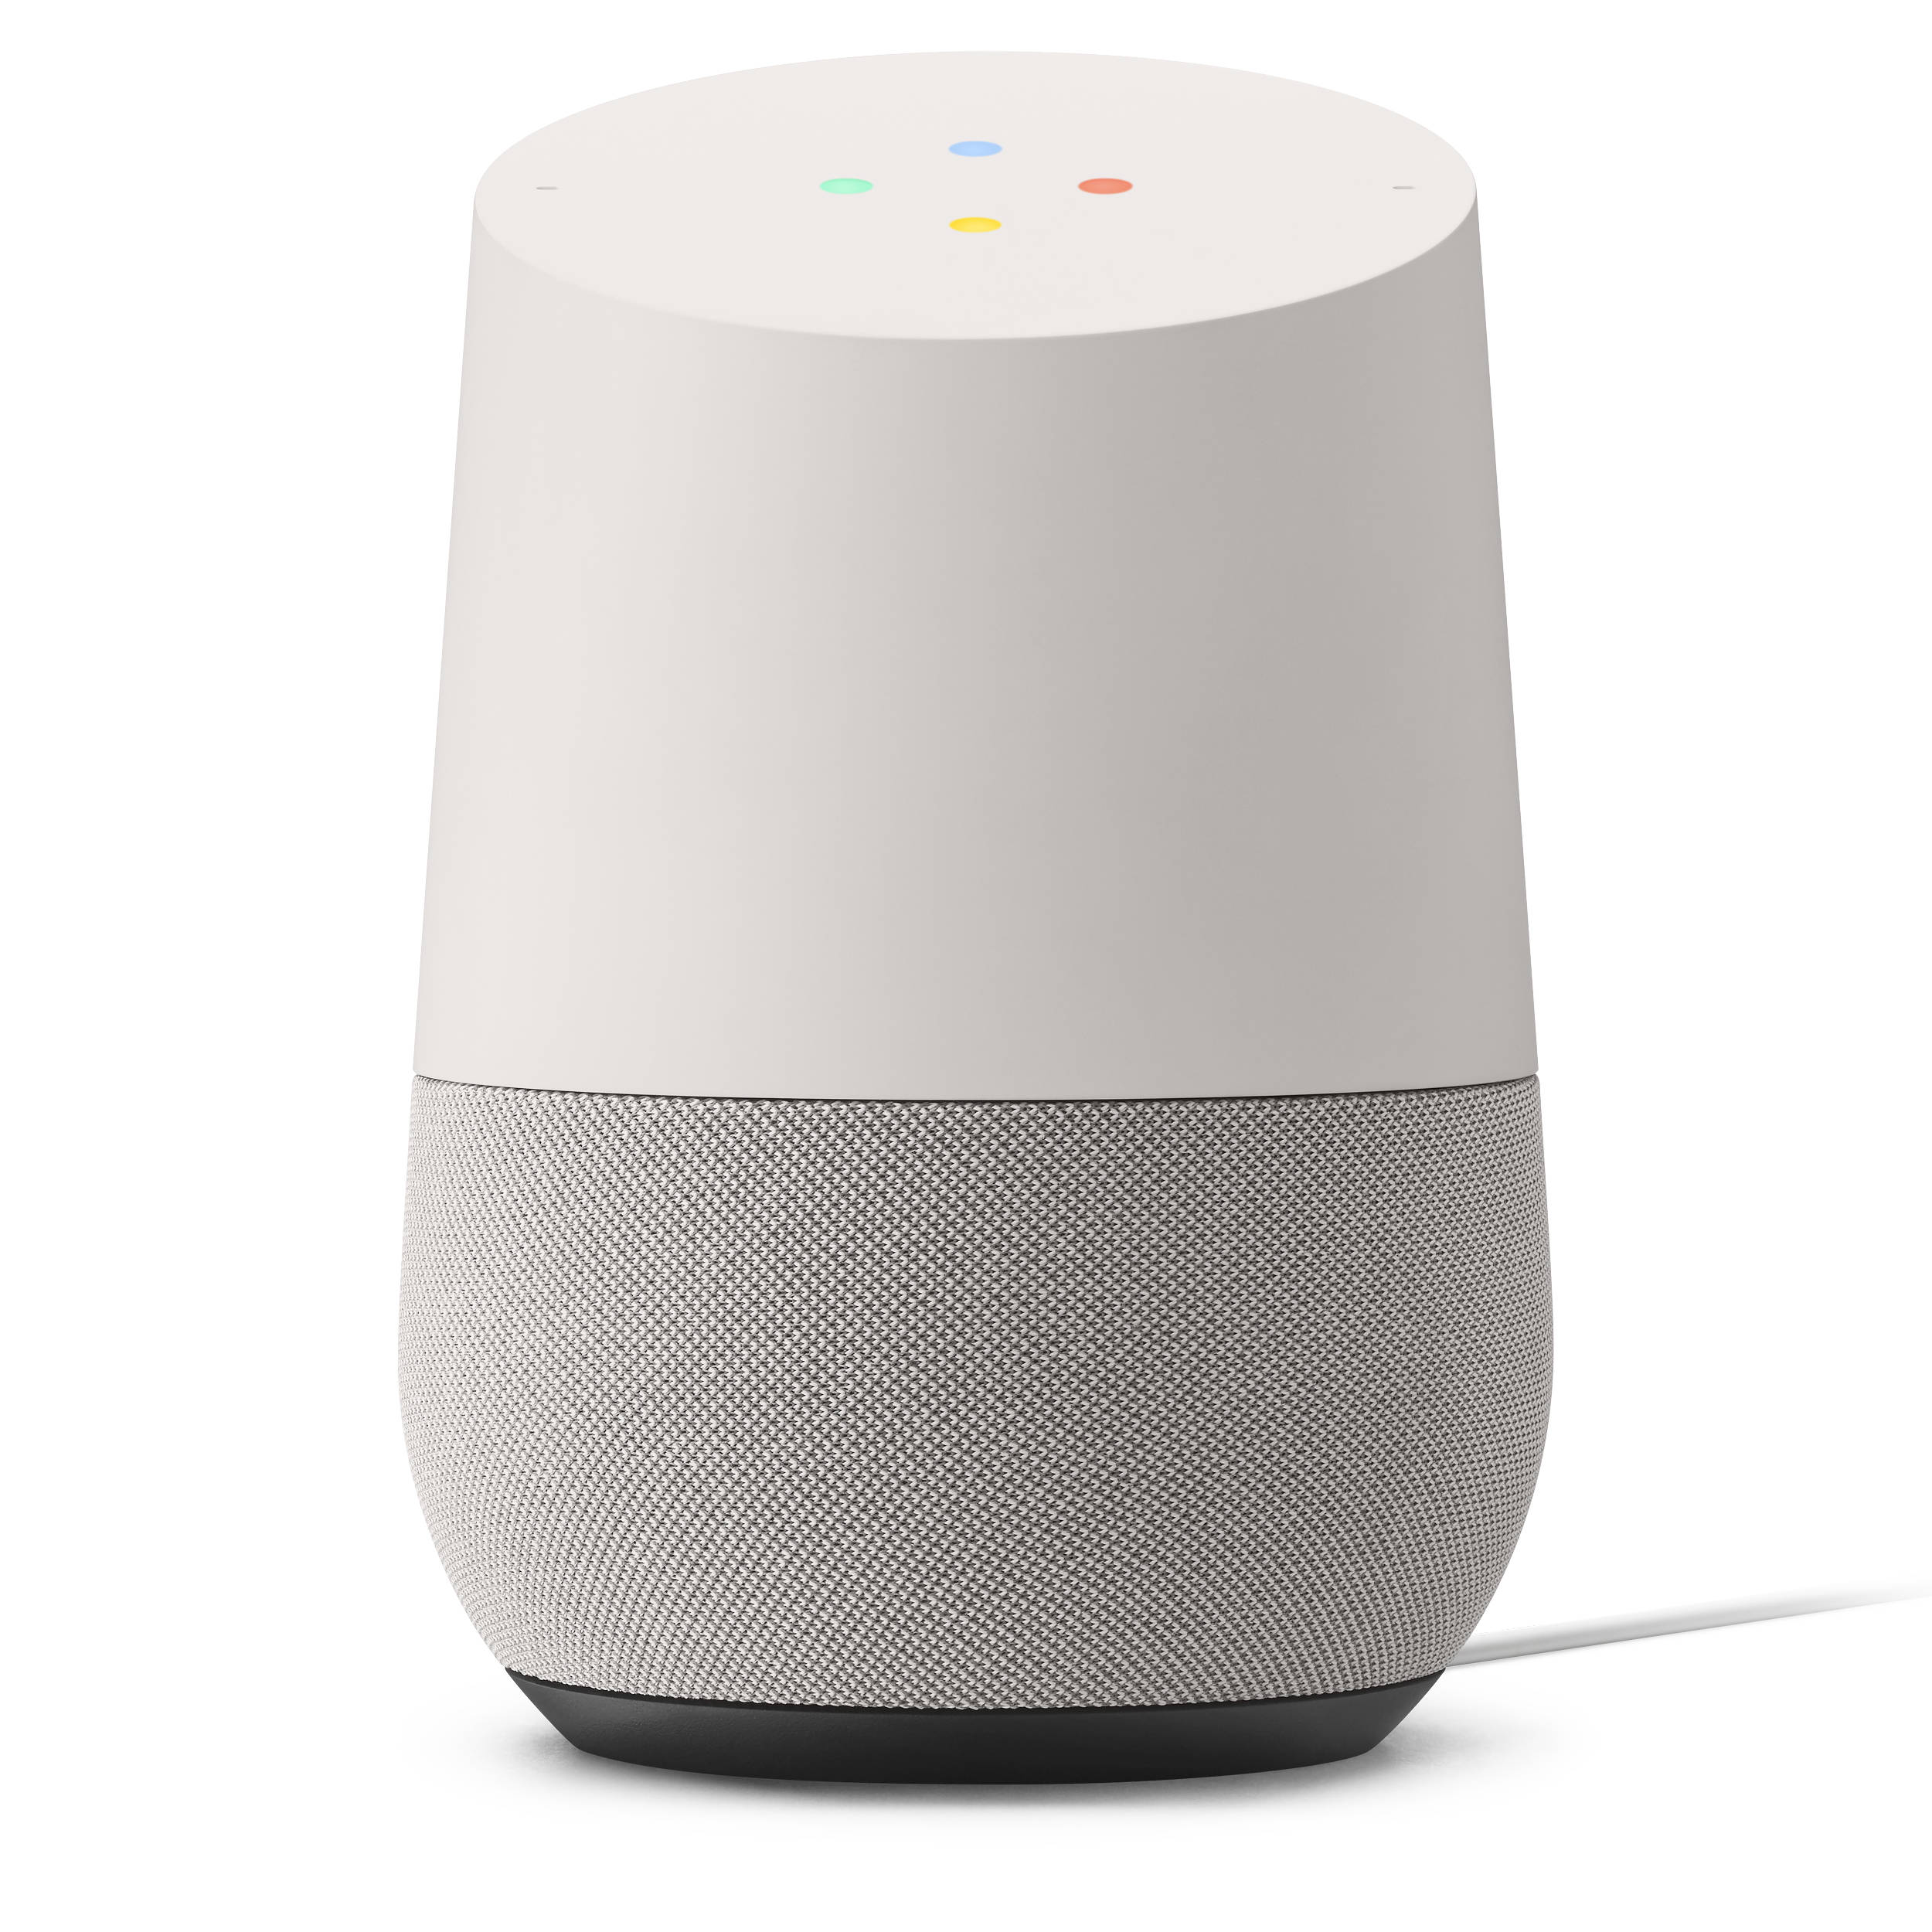 Google Home, iPhone Storage, Friendly Reminders